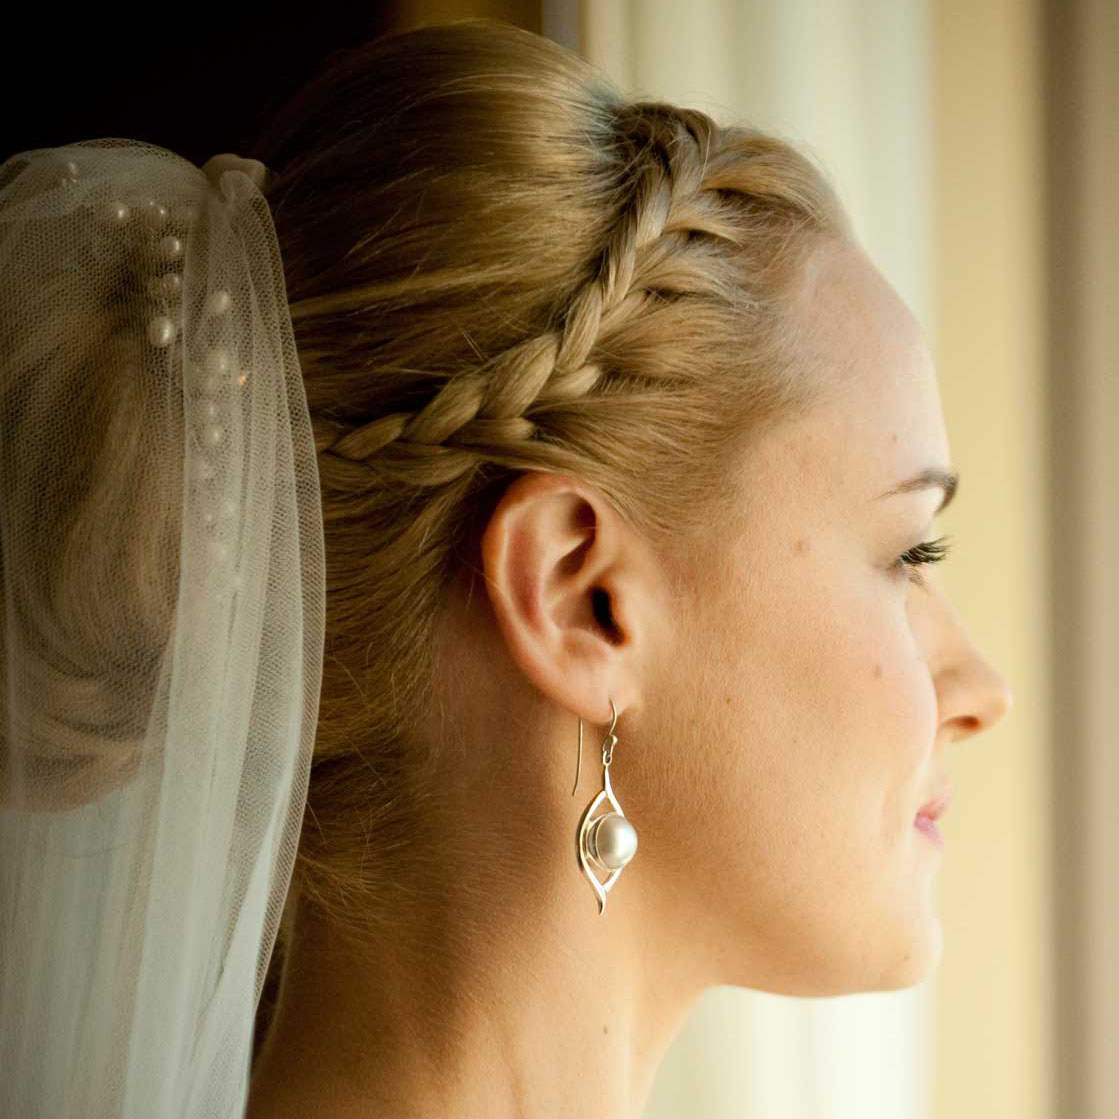 Wedding Hair French Braid: Classic Bridal Updo With French Braid In Front